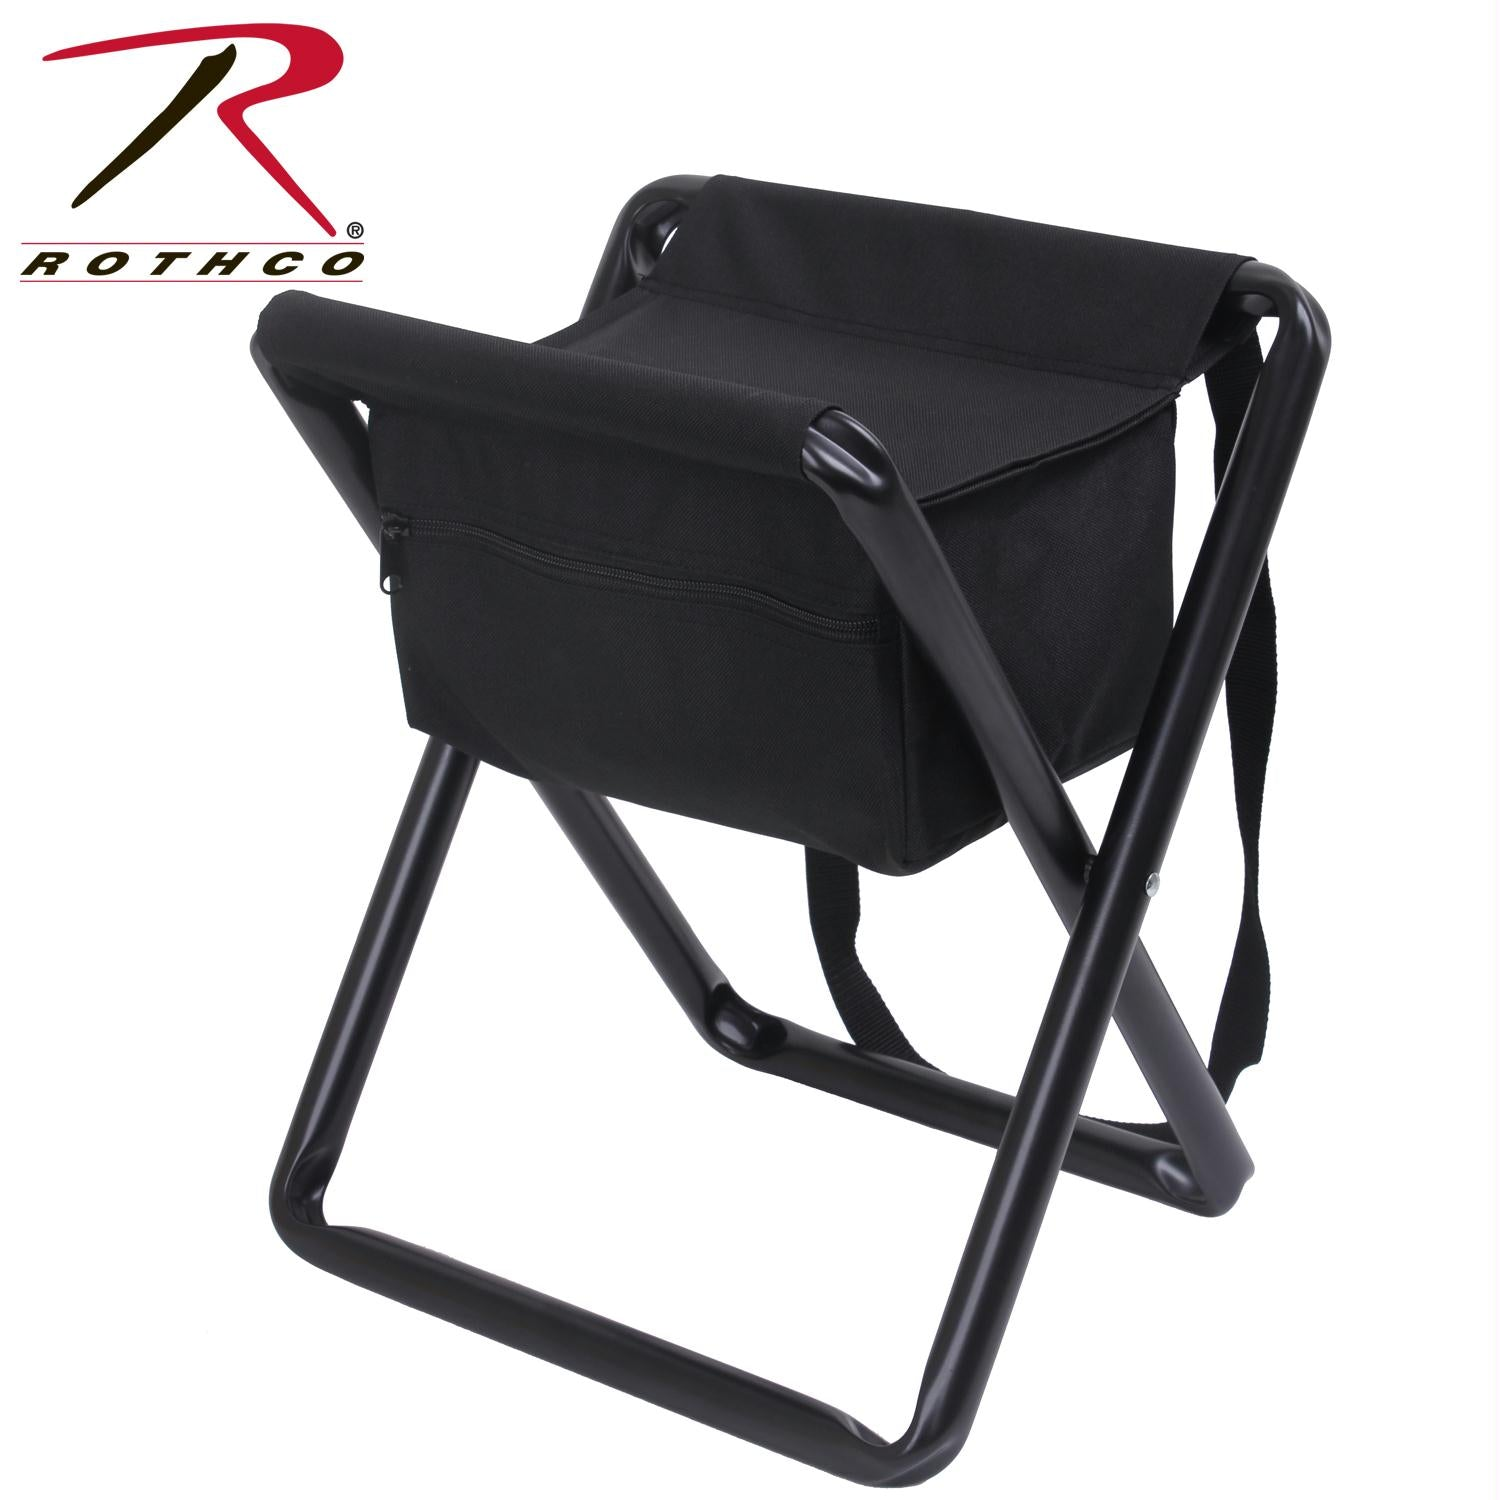 Rothco Deluxe Stool With Pouch - Black